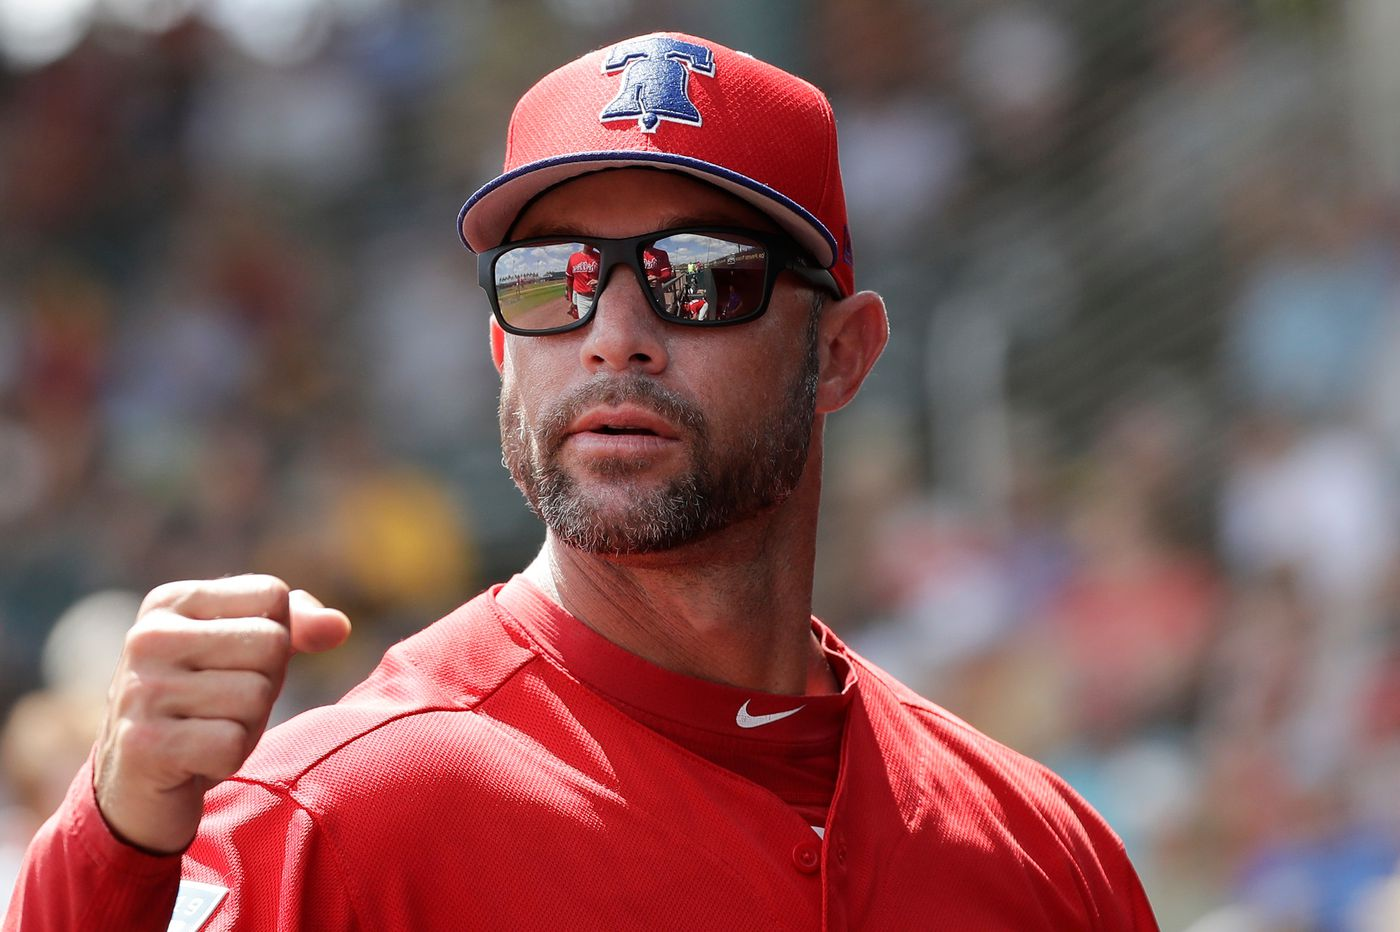 For the sake of manager Gabe Kapler, Phillies must avoid slow start | Scott Lauber